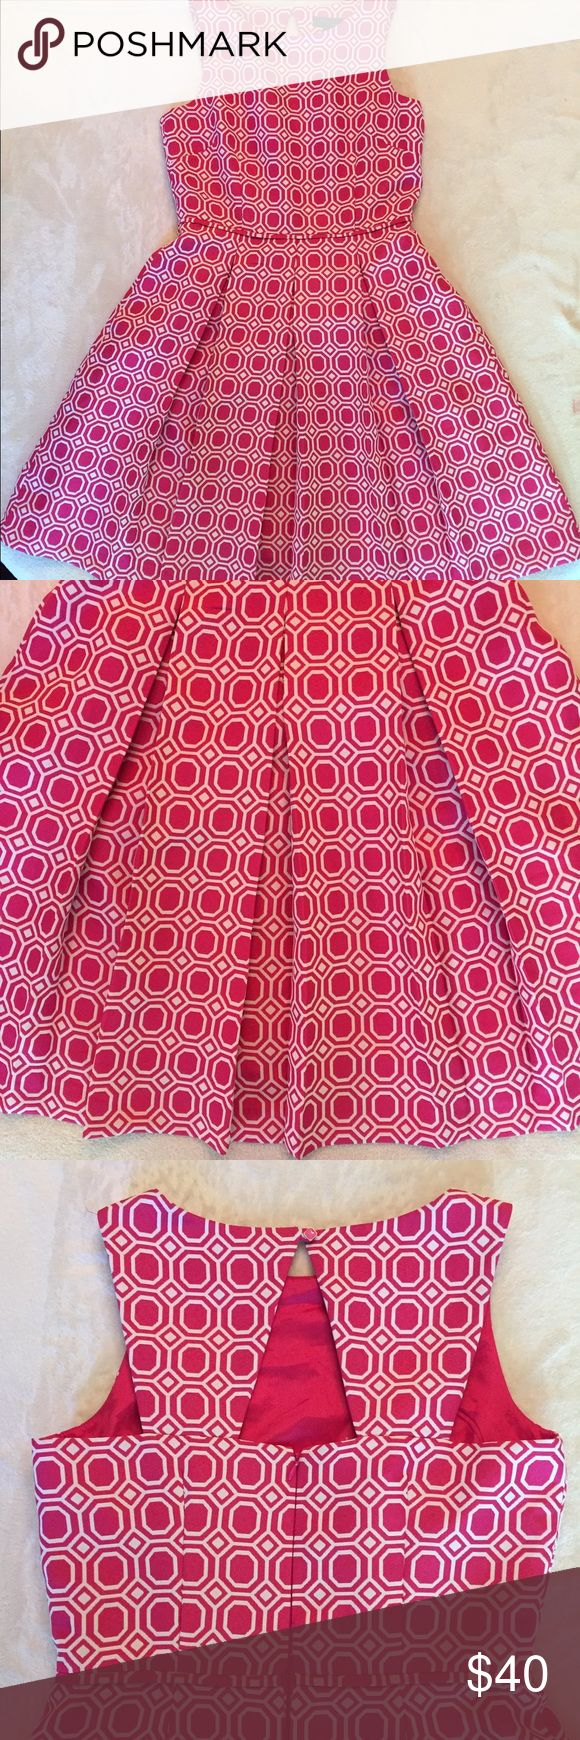 Vintage Style Pleated A Line Pink Geometric Dress This is a beautiful preppy vintage style dress with a cutout back, deep pleats, and an adorable pin-up girl feel. The thick fabric is breathable, but gives structure to this lovely piece. The zipper works well, the colors are vibrant, and this is in great condition overall! The only flaw is a sharpie mark through the tag that does NOT bleed through to the back. 🎀 keywords: prep, sorority recruitment, circle skirt, trend, retro, cute…